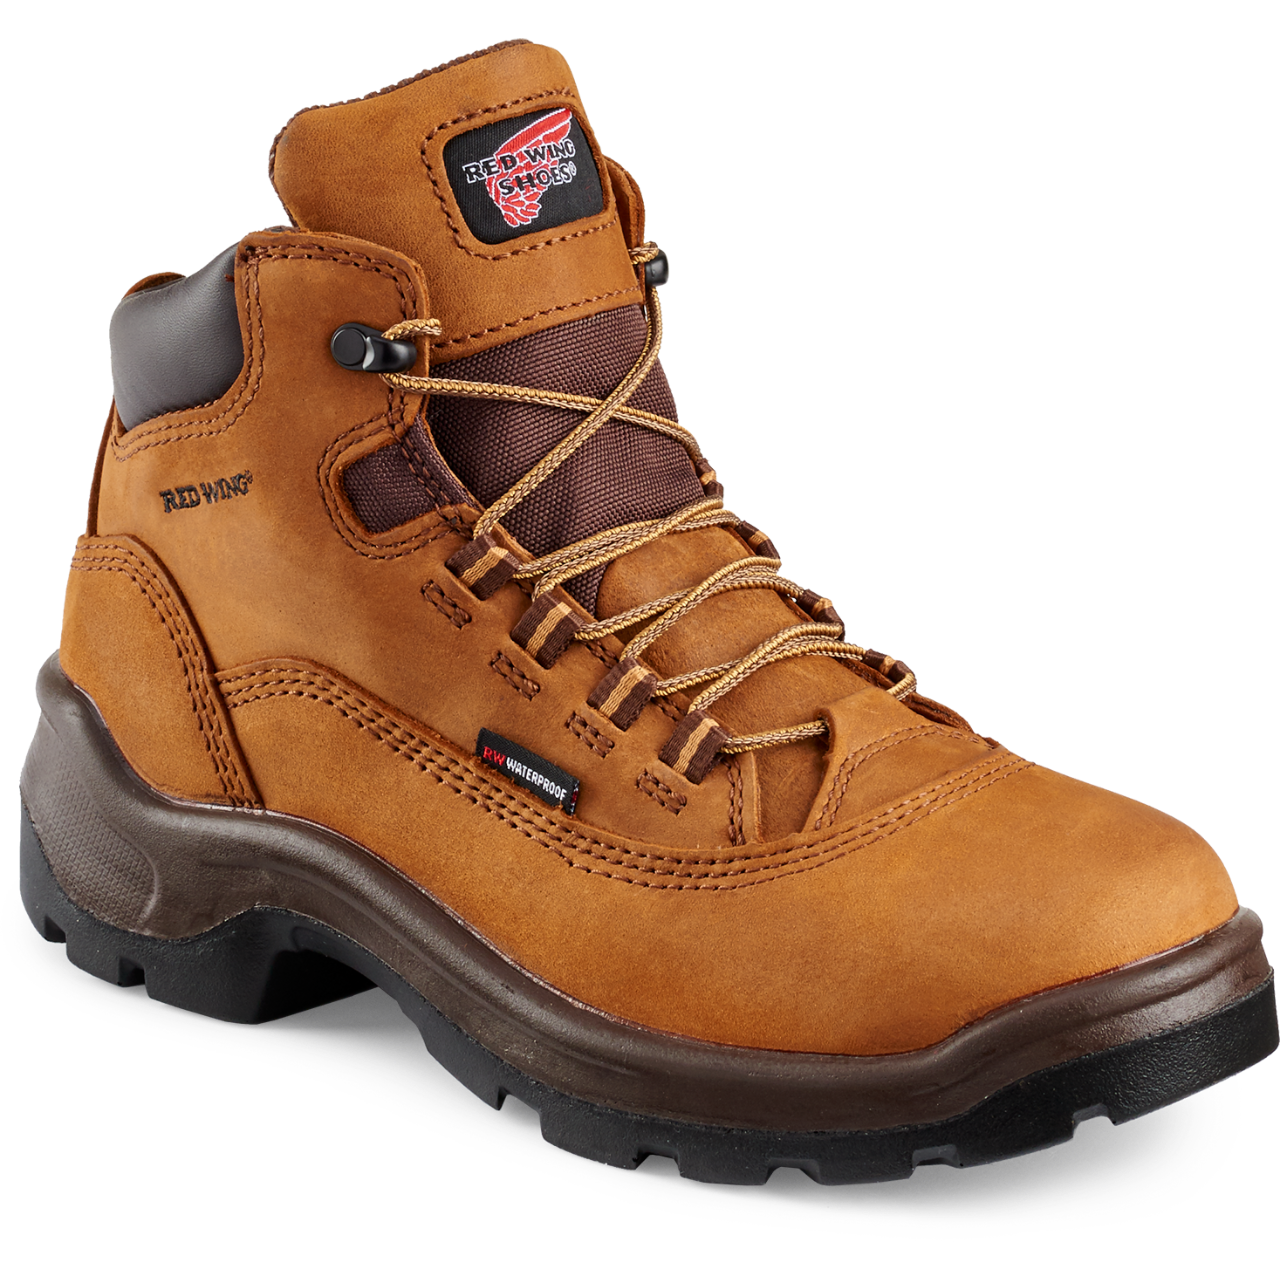 Red Wing 2327 - Women's 5-inch Boot Brown  Steel Toe - Waterproof Electrical Hazard - Core Style  Click here for specifications